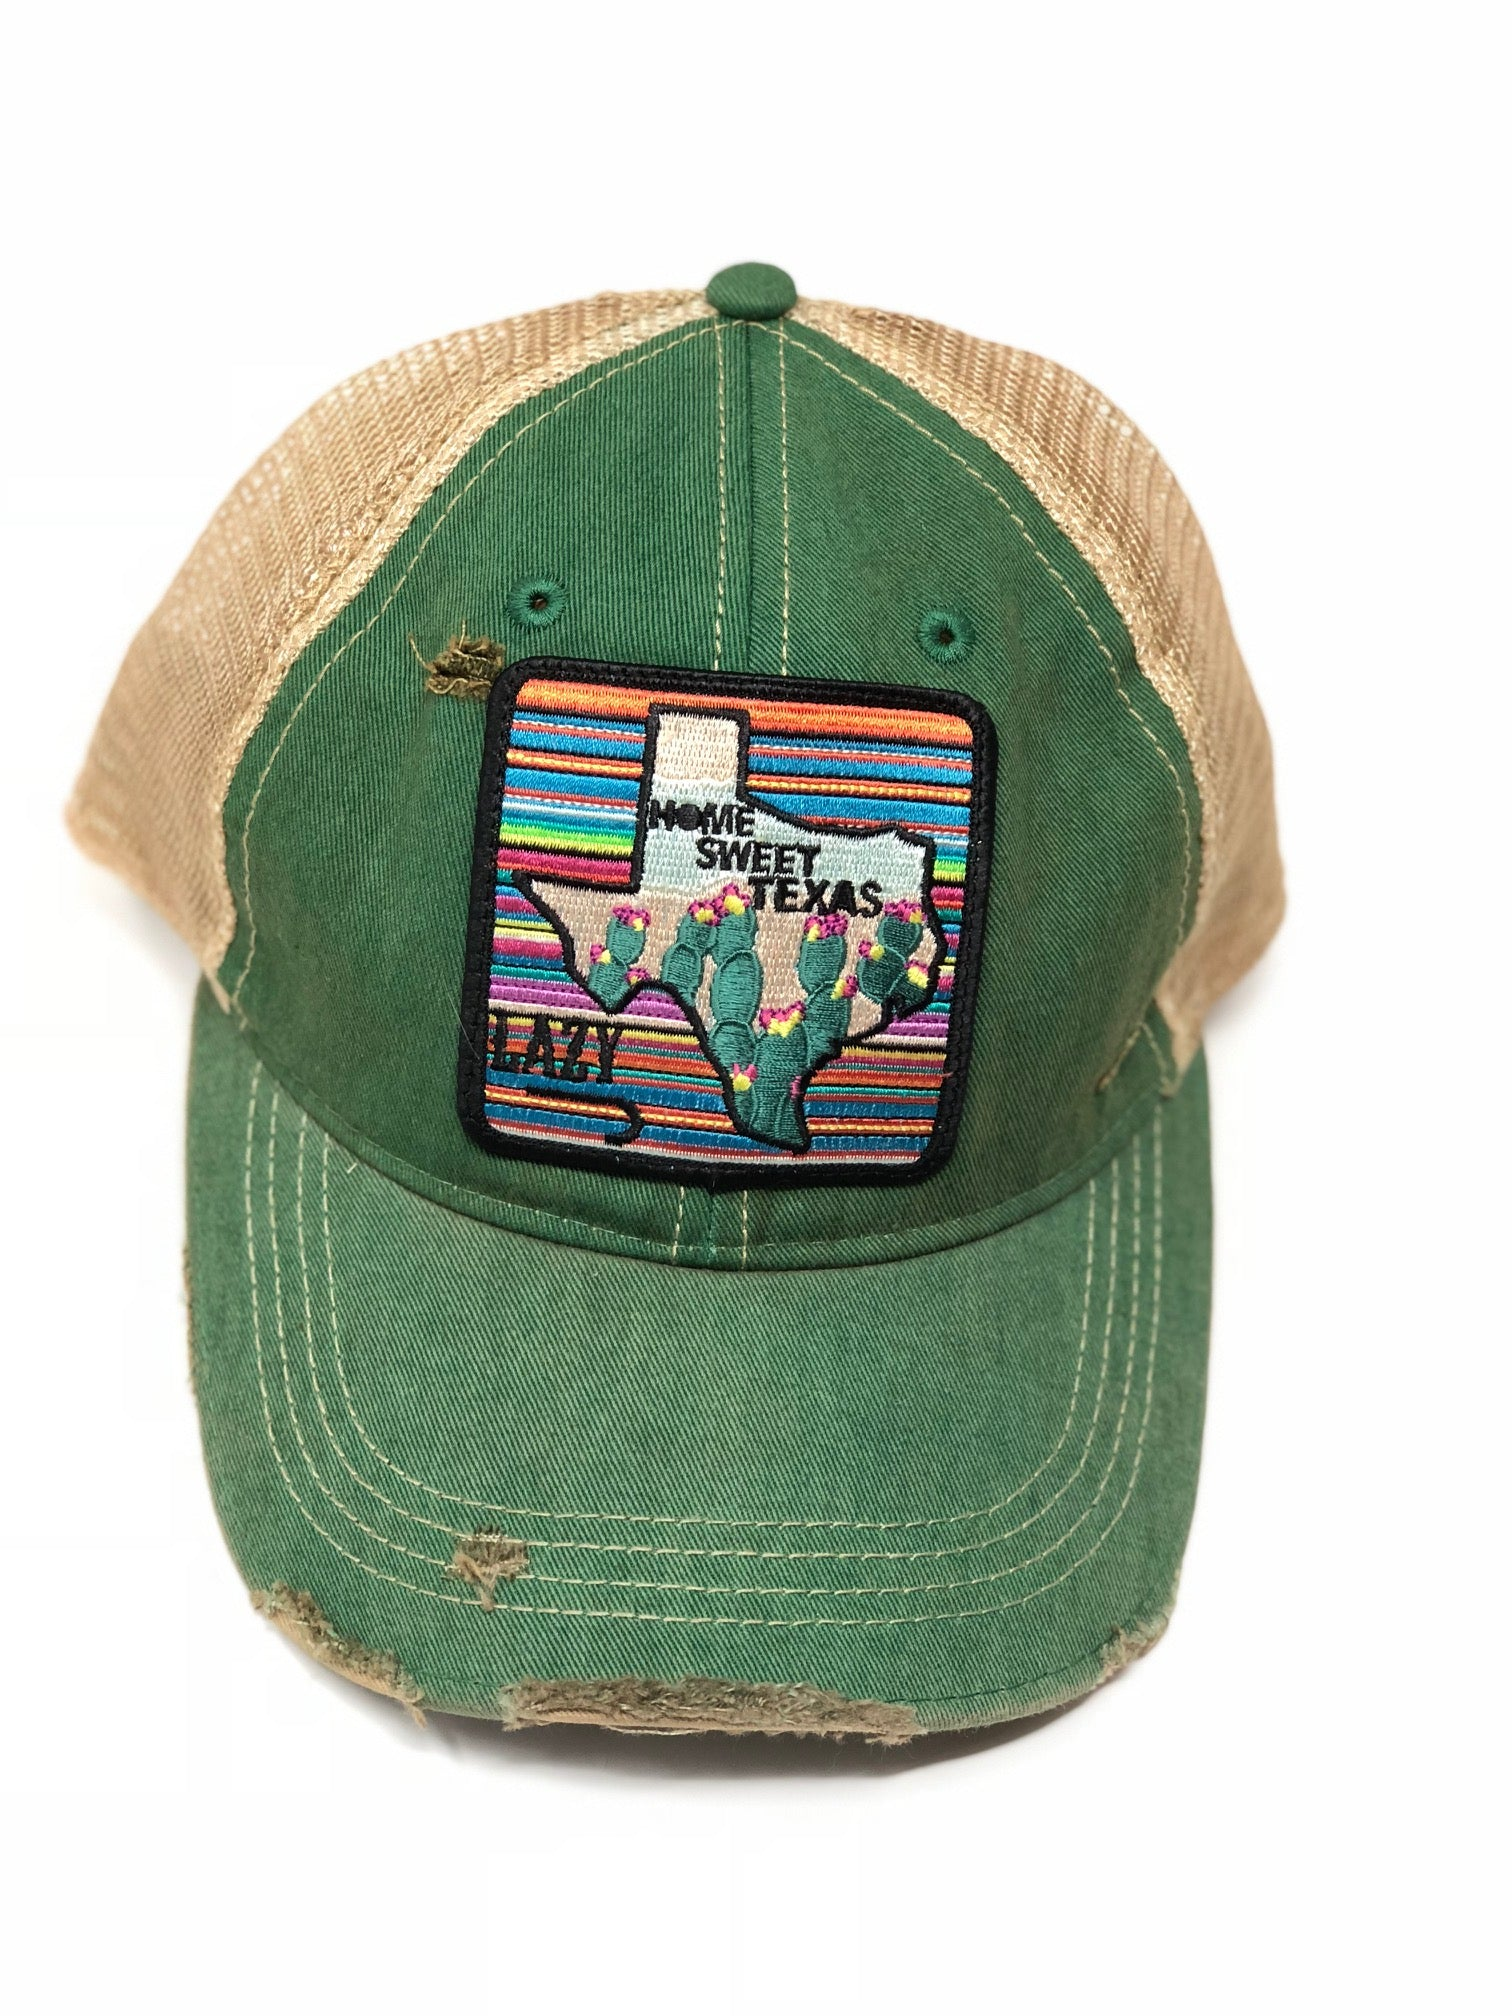 f5649918 Lazy J Kelly Green & Tan Unstructured Home Sweet Texas Patch Cap